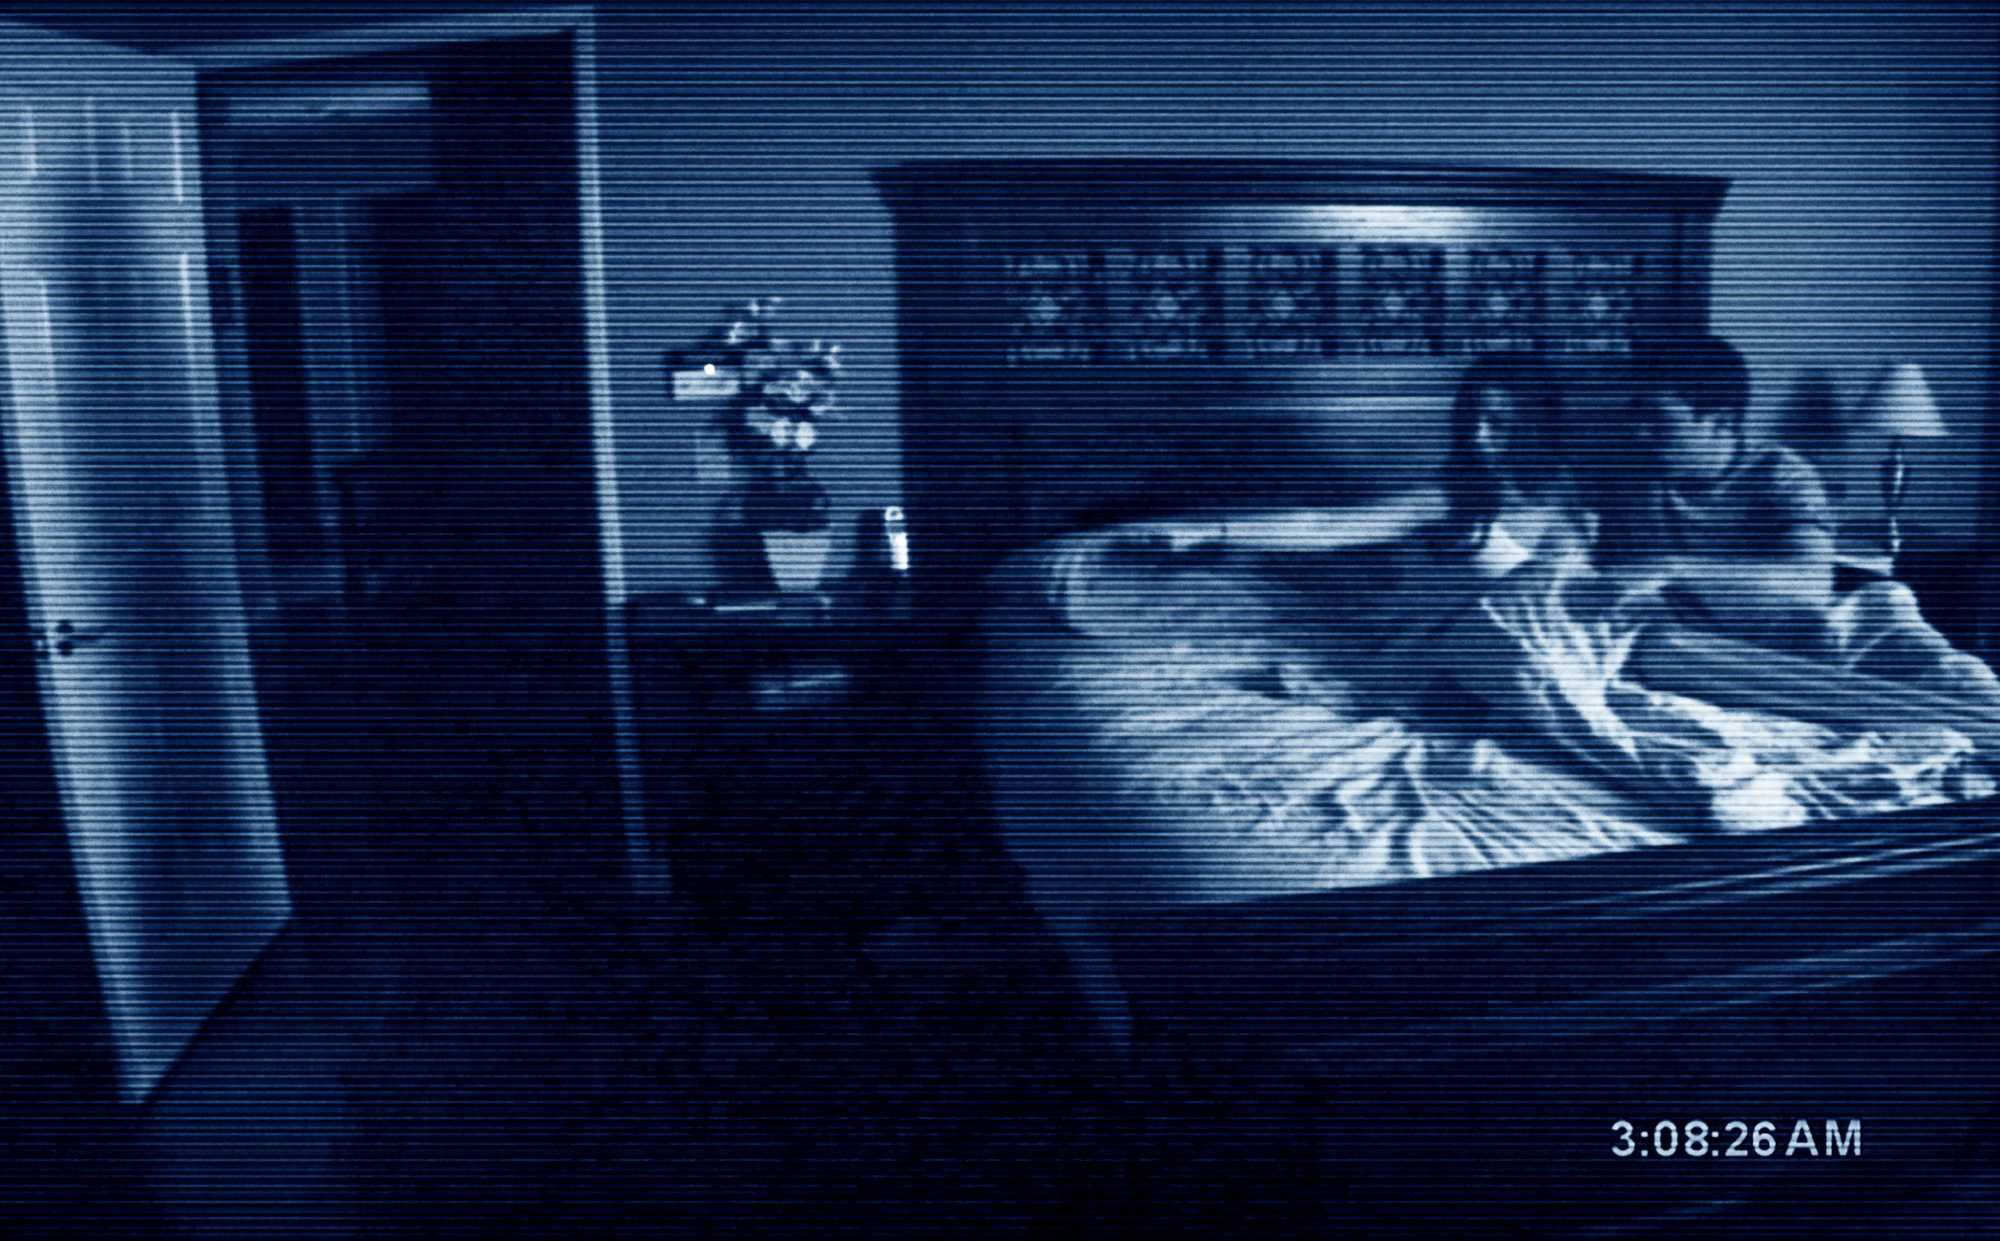 Paranormal Activity - Hành động siêu linh Paranormal-activity-movie-katie-featherstone-micah-sloat